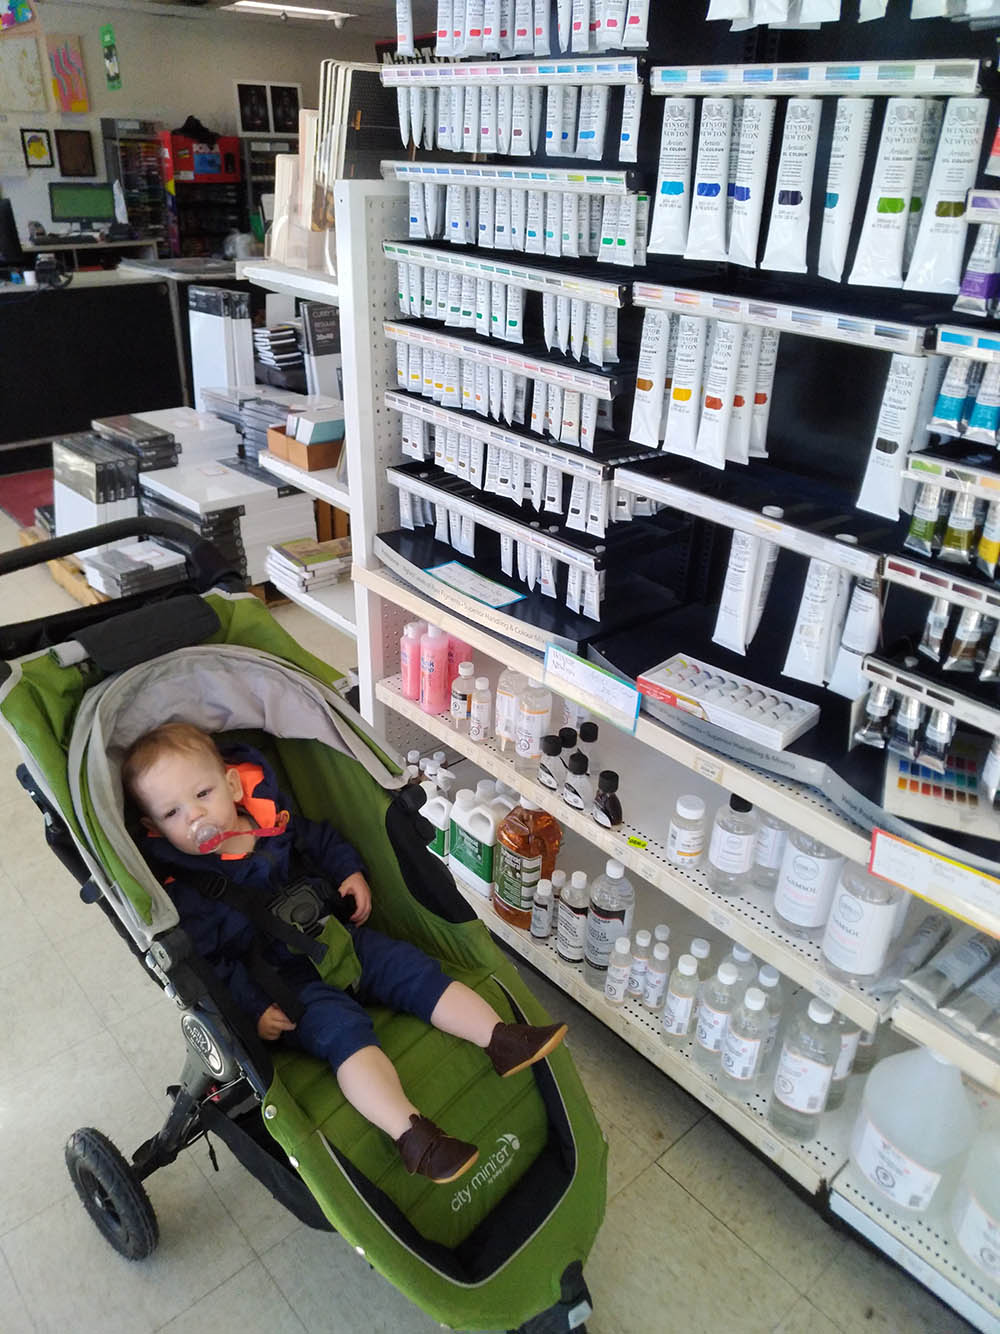 Why sit and be tired when you could be shopping for art supplies? OR if you are a baby you can do both at the same time!